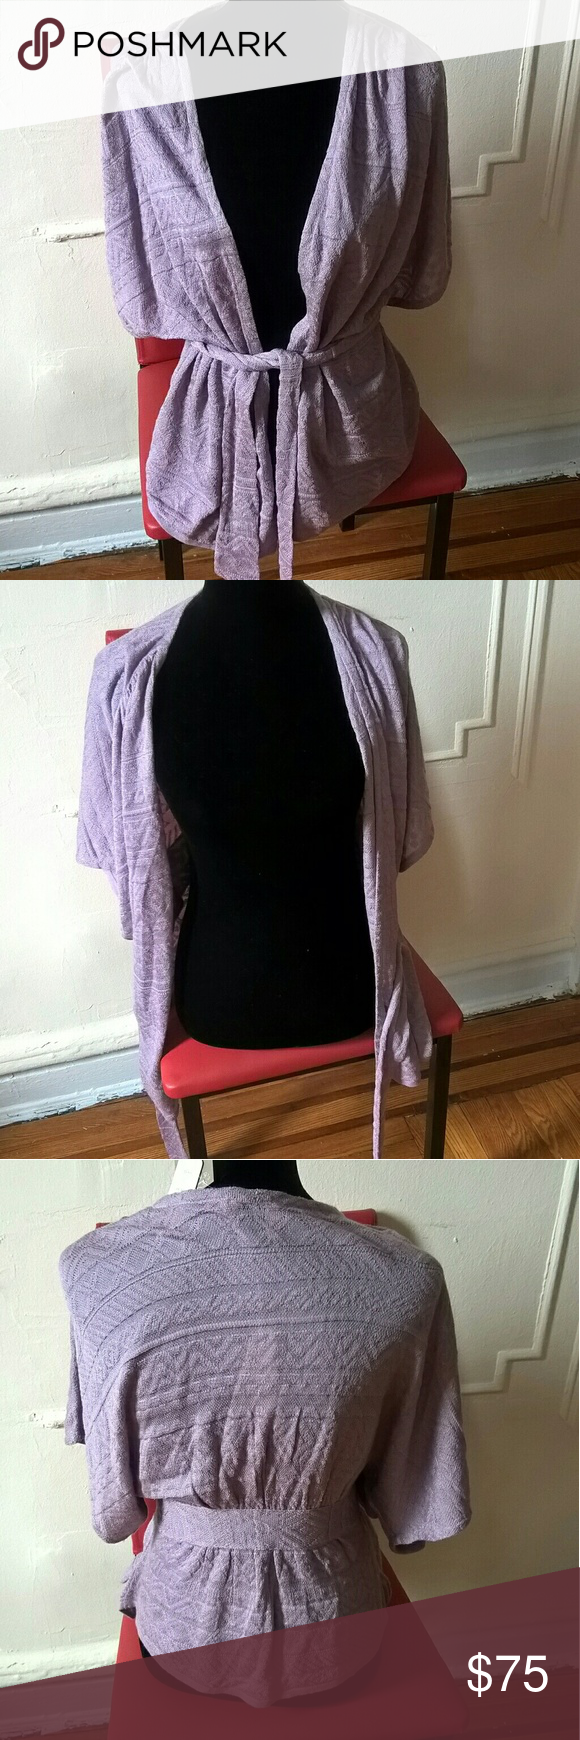 "NWT Anthropologie Purple Kimono Sleeves Sweater M New with tags. Extra thread added Kimono sleeves Light purple lilac color Thin knit Wrap waist with belt Perfect for summer nights  Length: 23"" Bust: 25"" Anthropologie Sweaters"